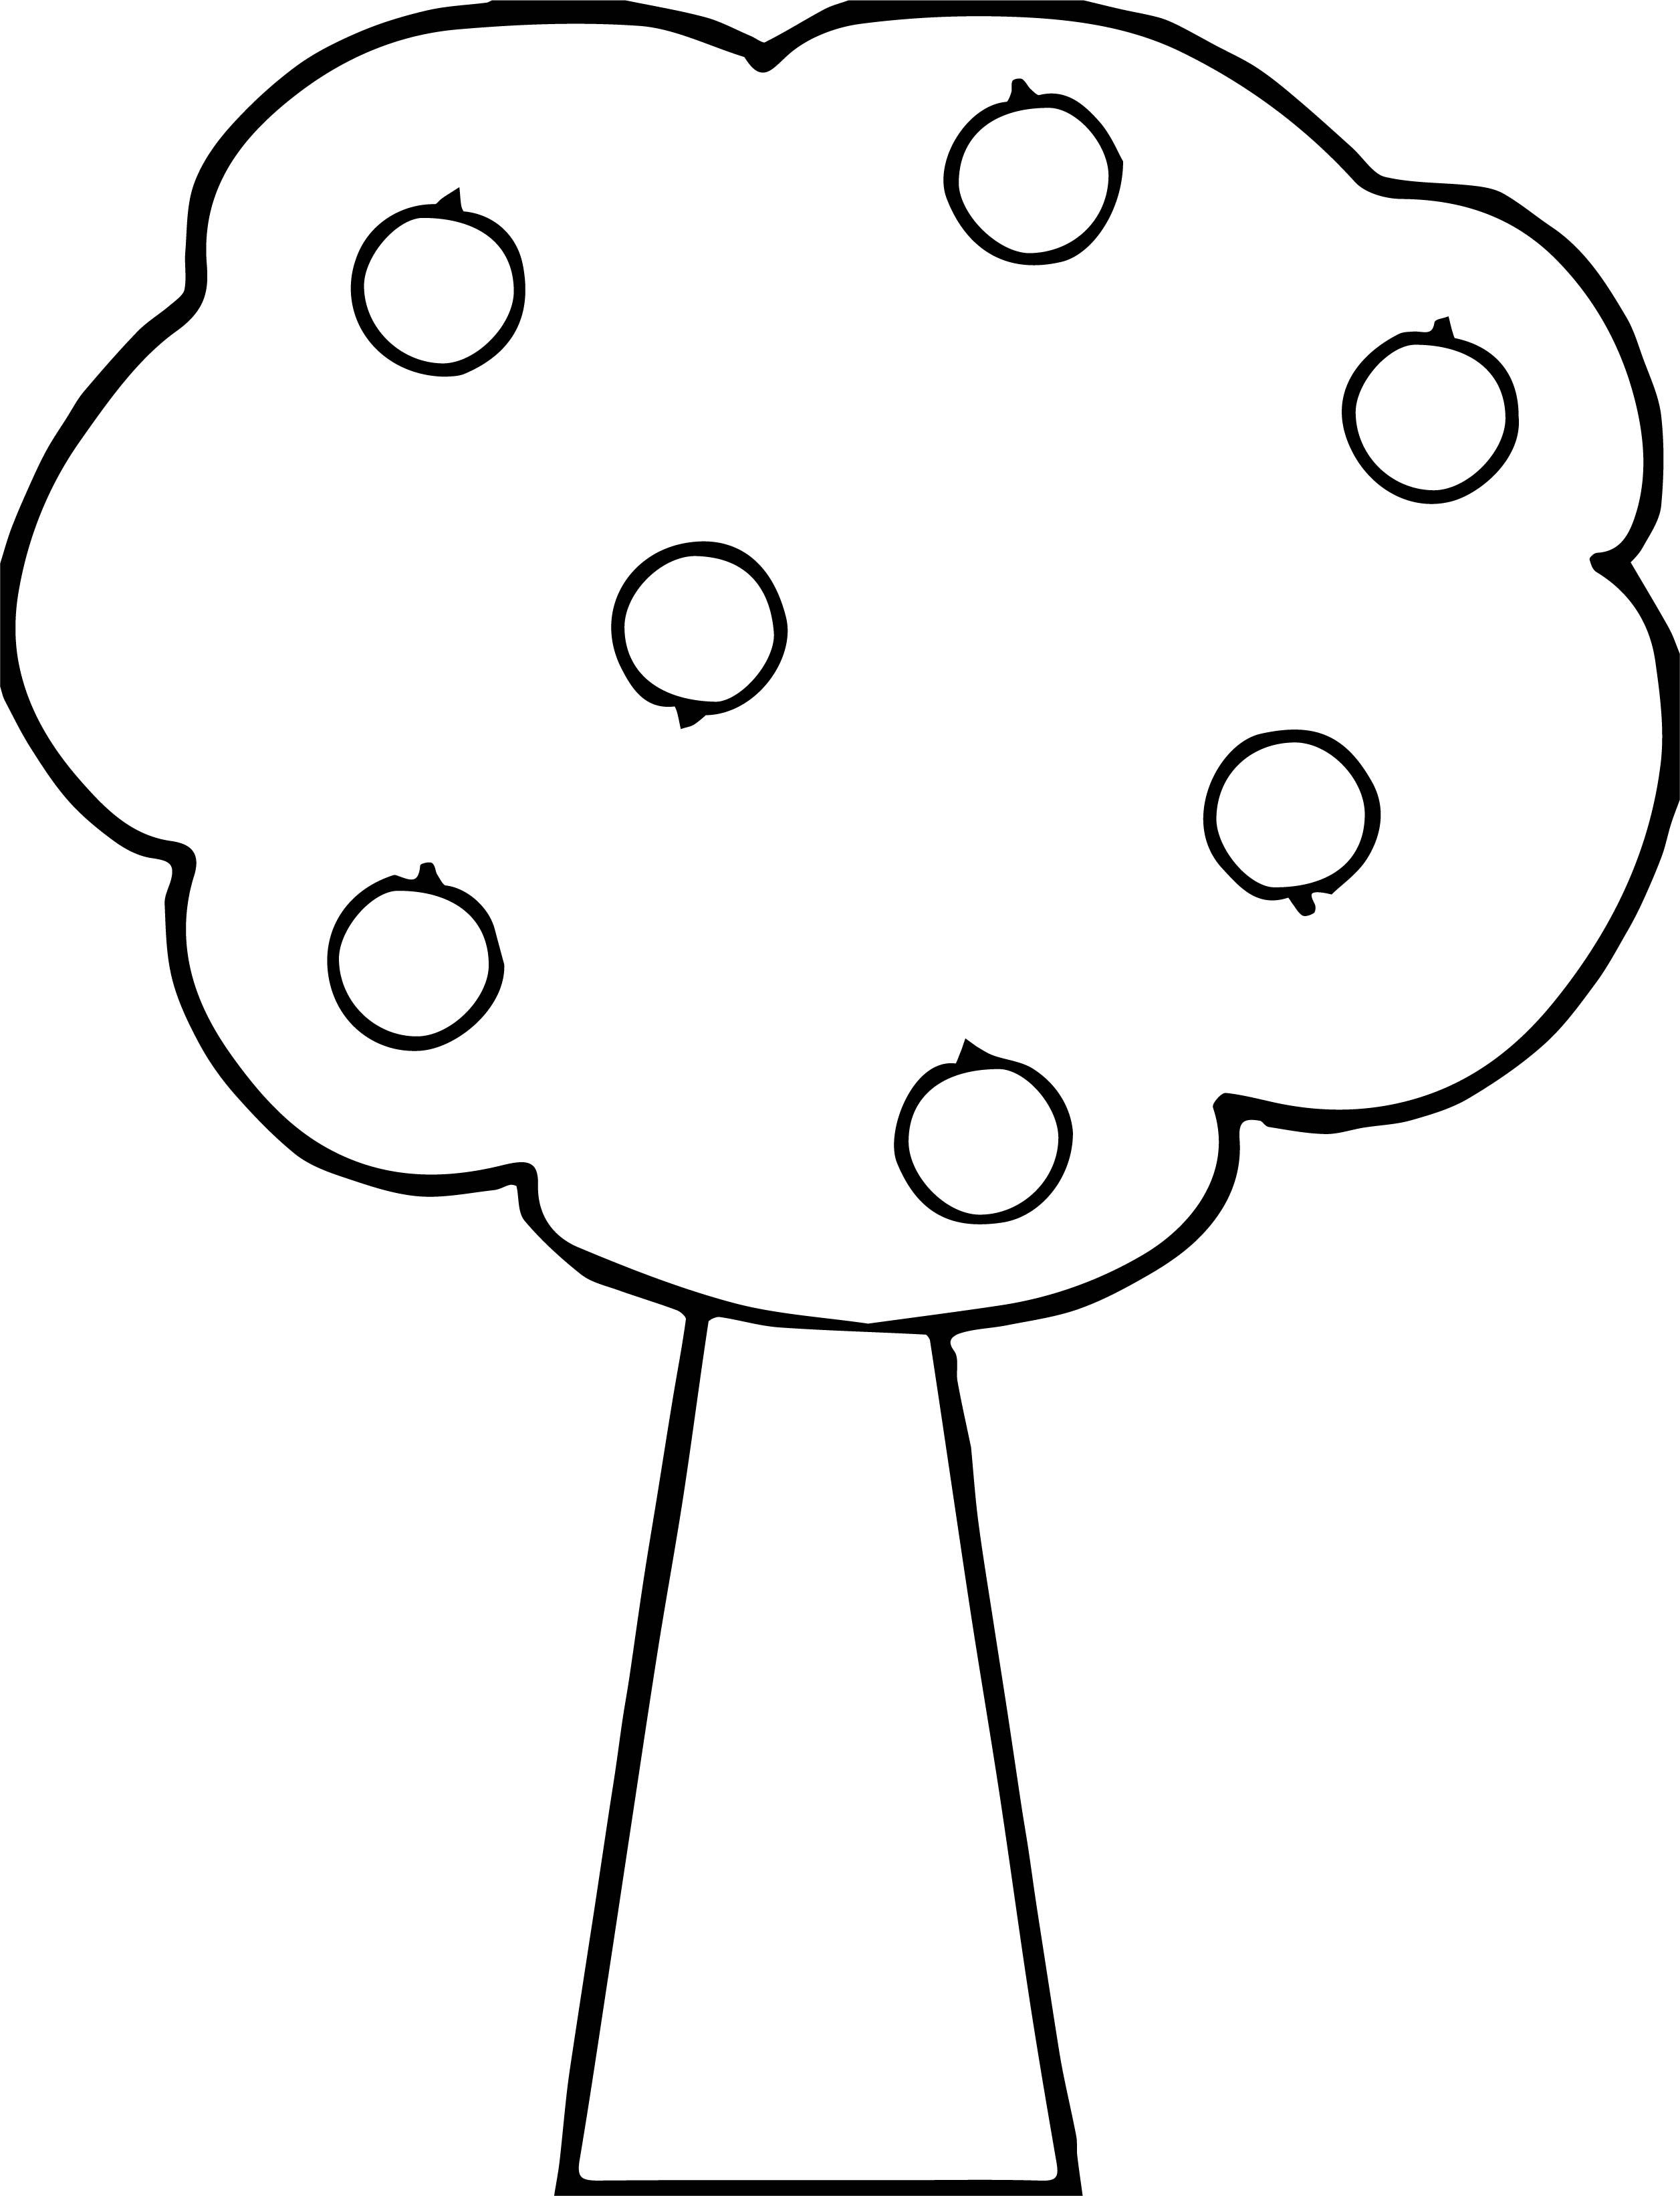 Good Apple Tree Coloring Pages   wecoloringpage   Pinterest   Apples